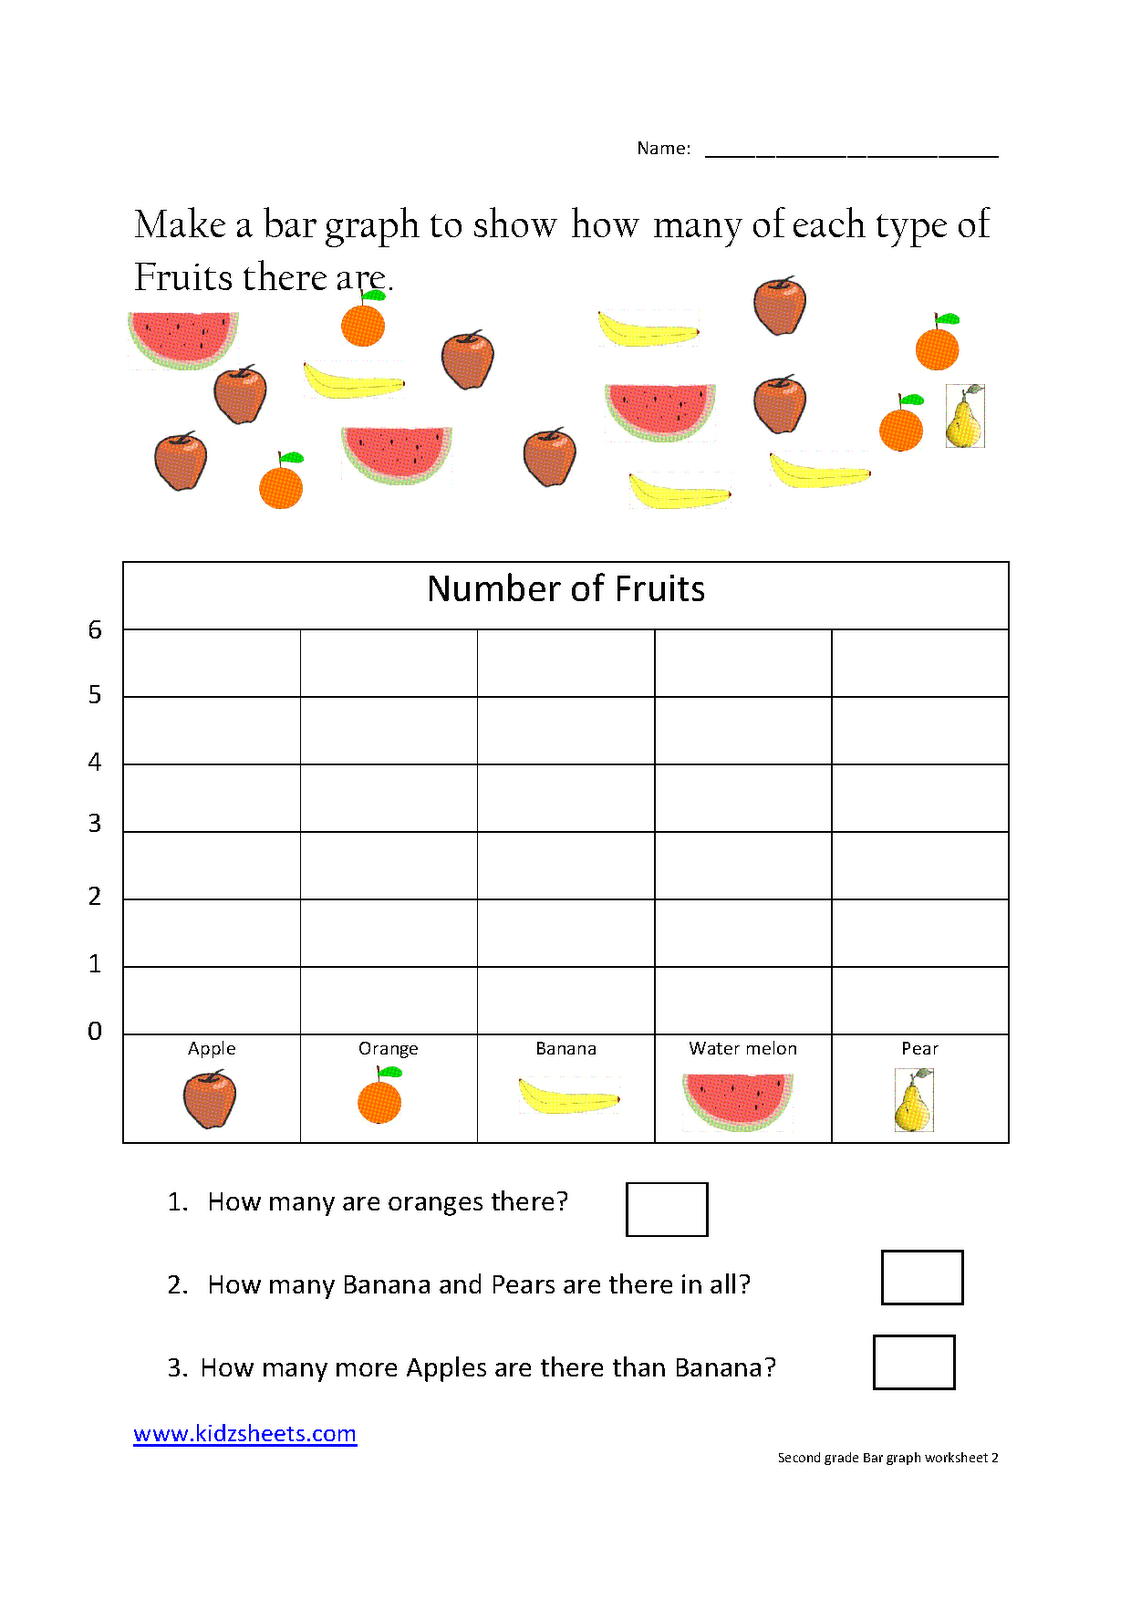 Kidz Worksheets Second Grade Bar Graph Worksheet2 – Kindergarten Graphing Worksheet